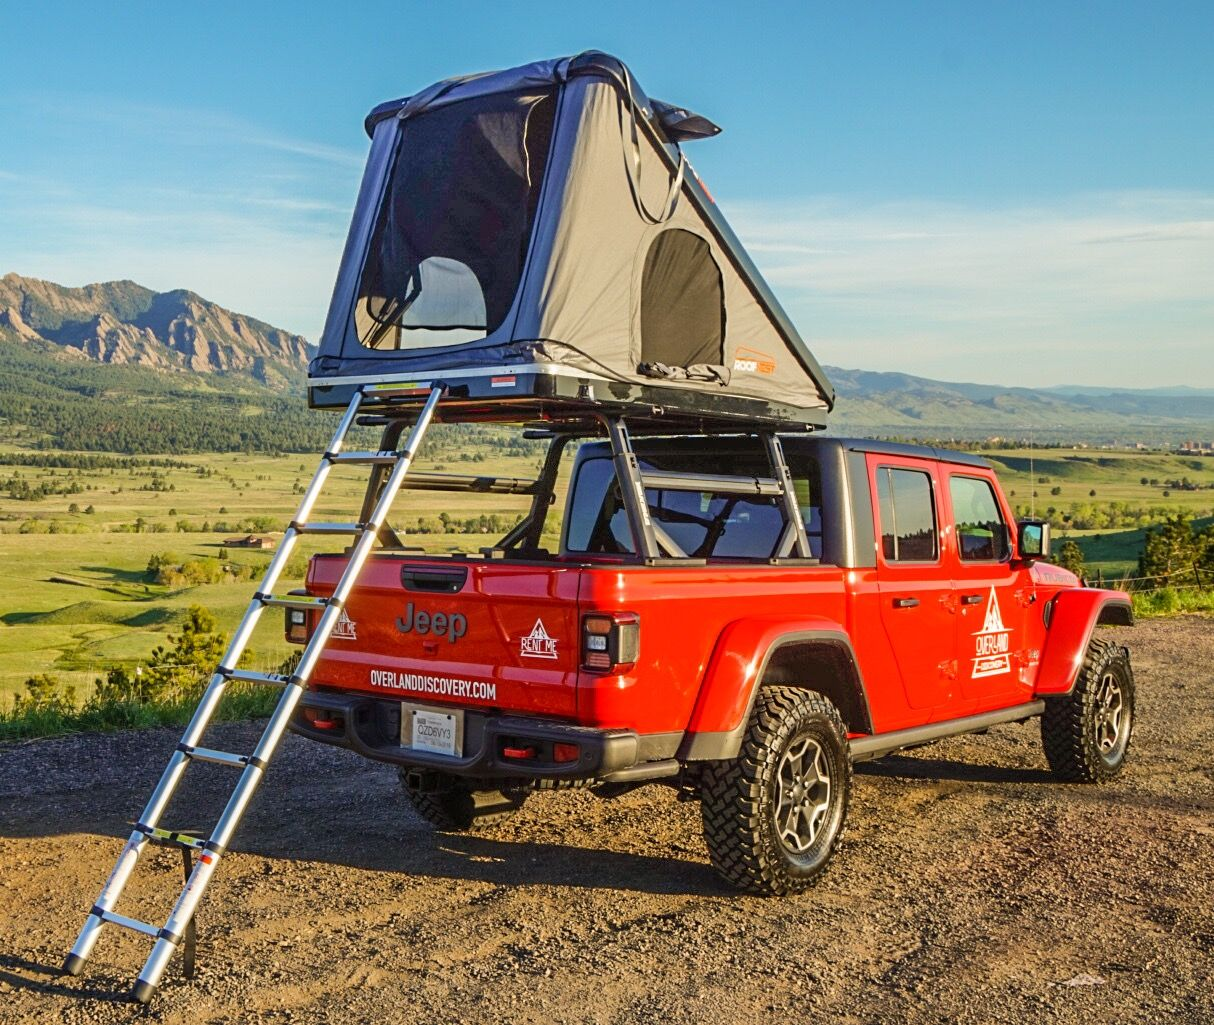 Jeep Gladiator Camper Overlanding Equipped With Rooftop Tent